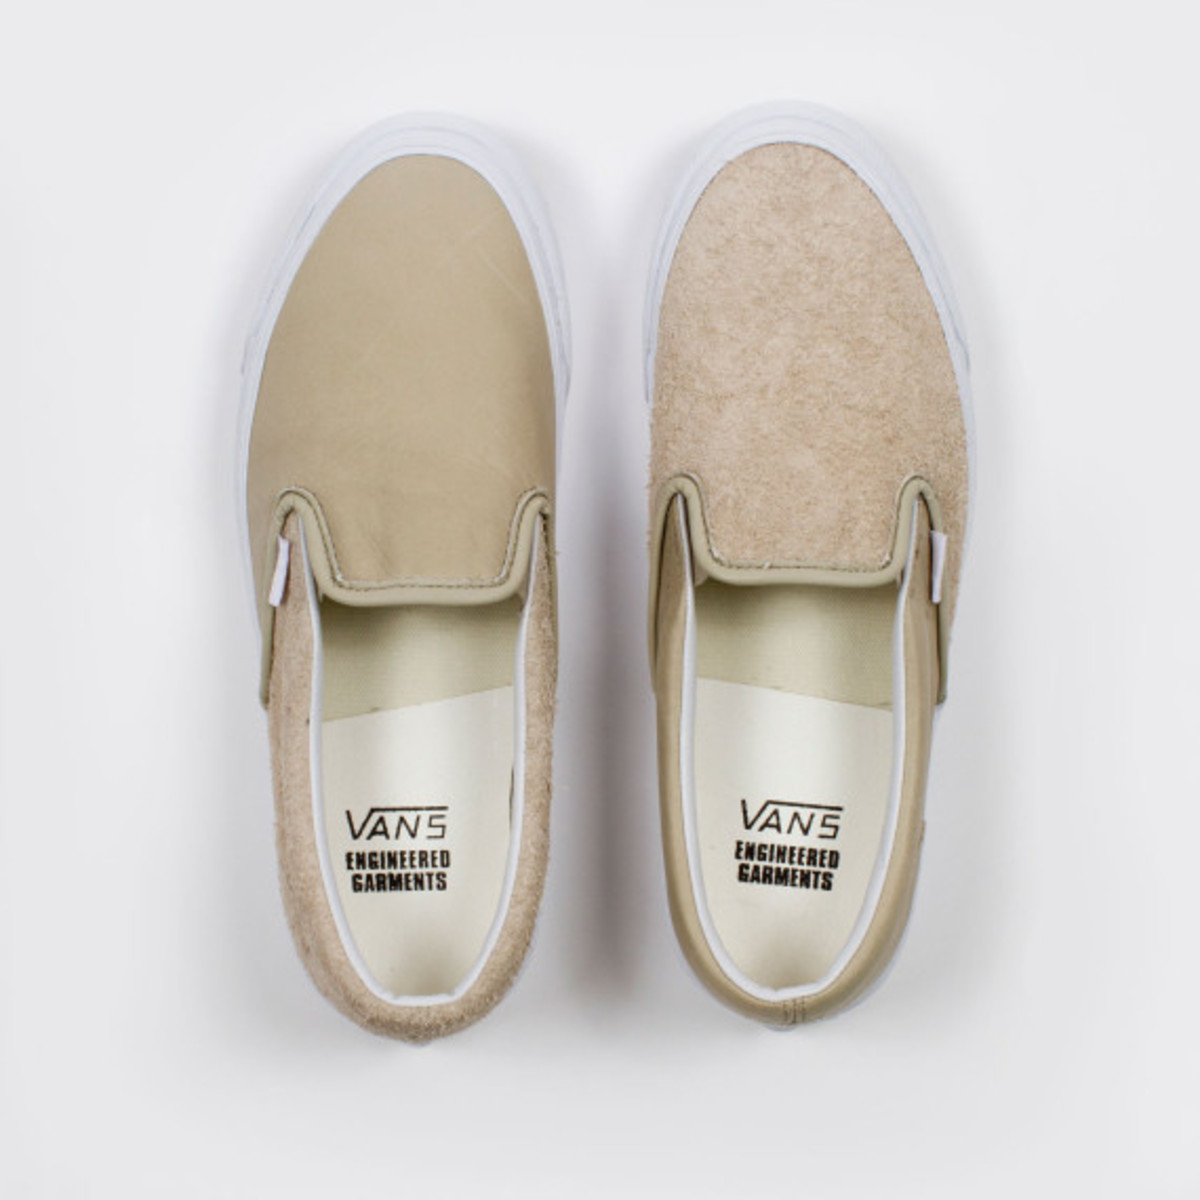 engineered-garments-vault-by-vans-collection-launch-at-nepenthes-06